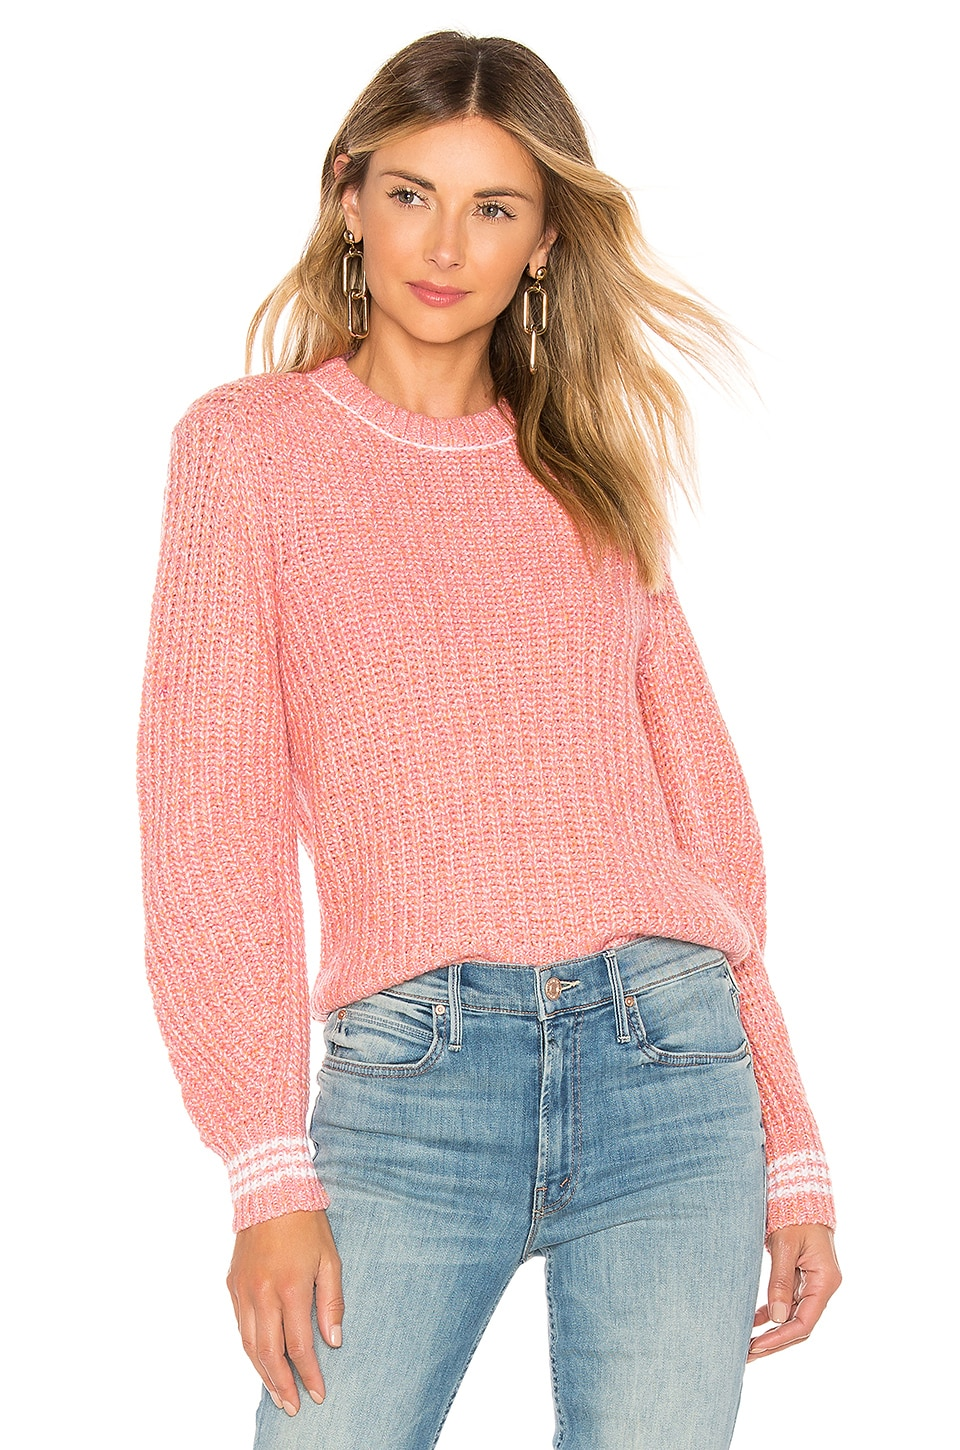 Rag & Bone Cheryl Crew Sweater in Pink Multi